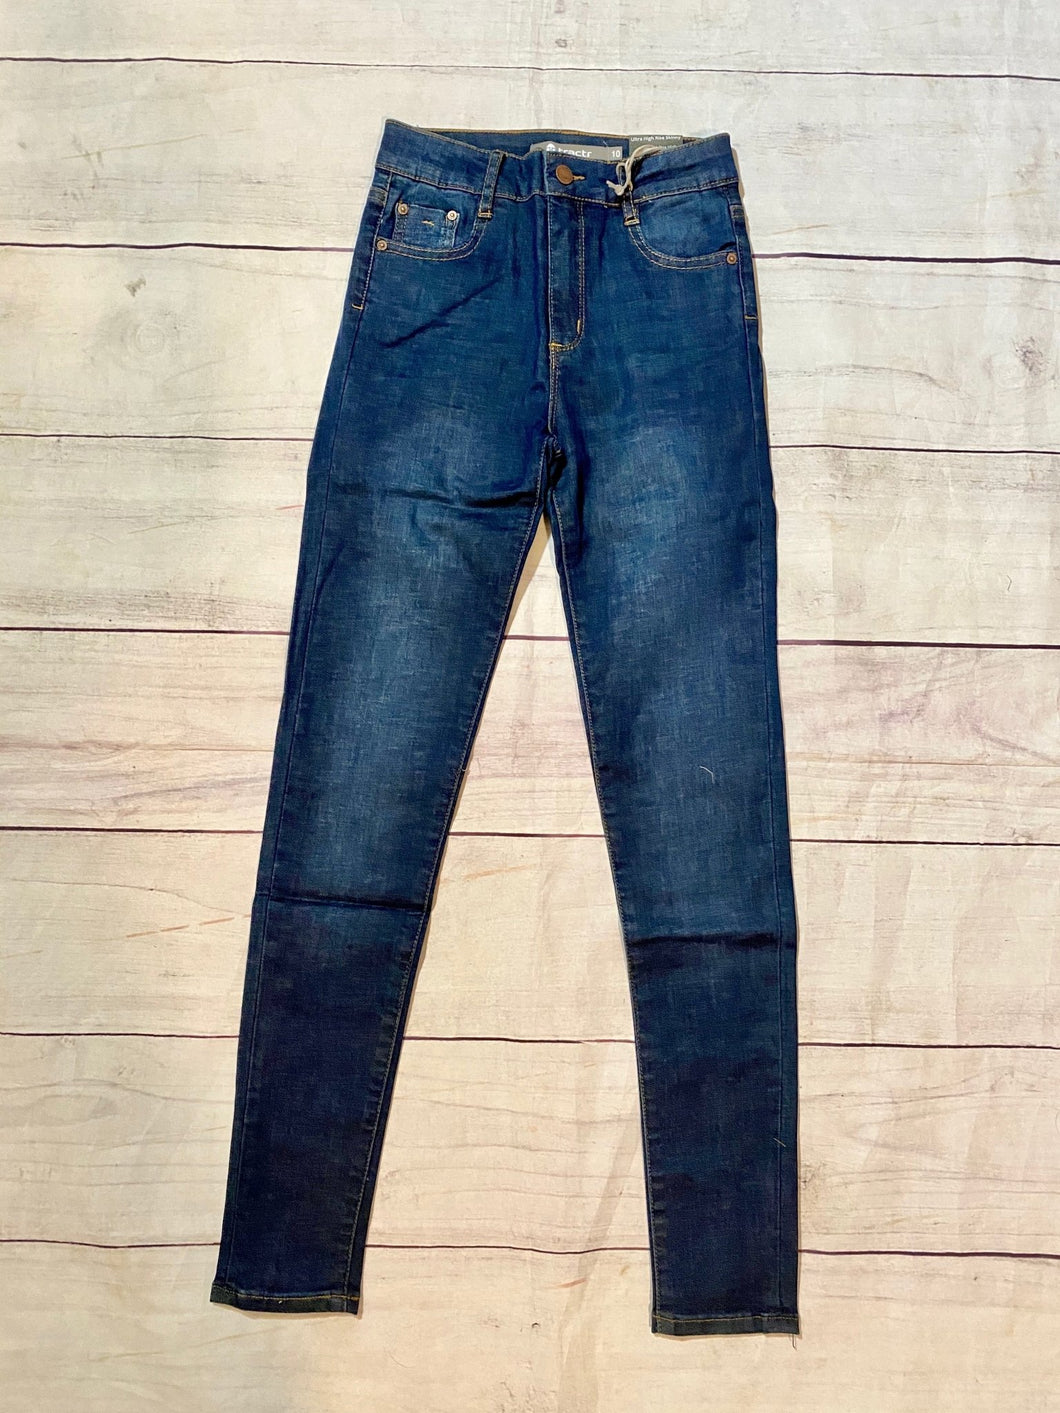 Tractr Ultra High-Rise Skinny Jeans - jernijacks